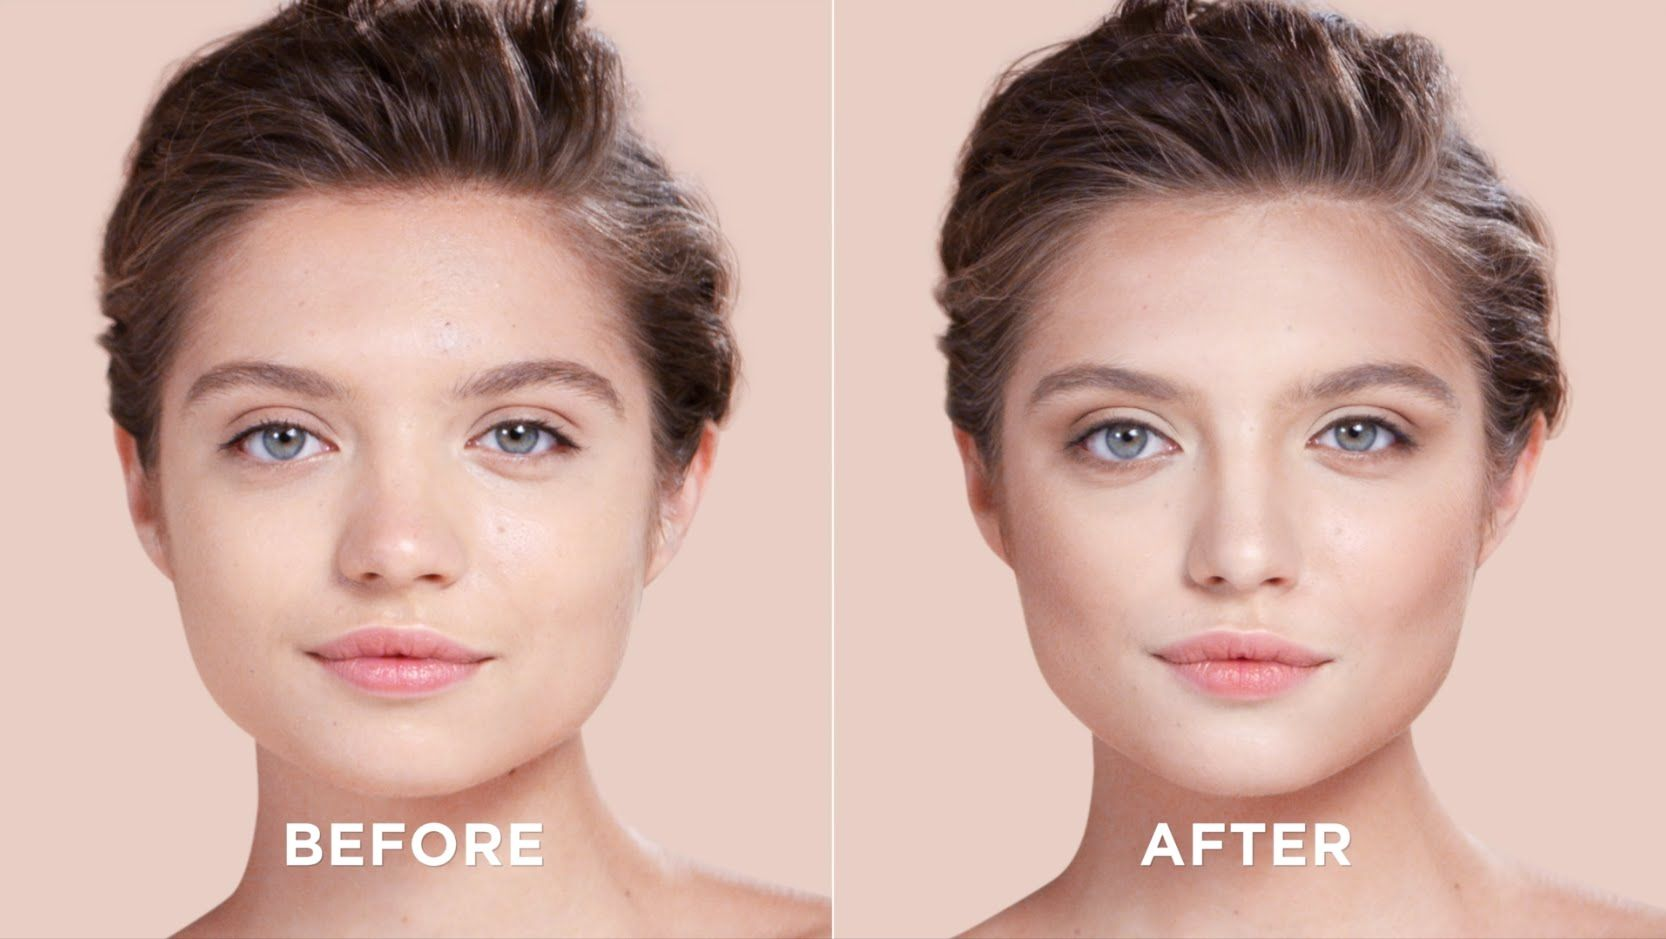 How to video for contouring a square face shape